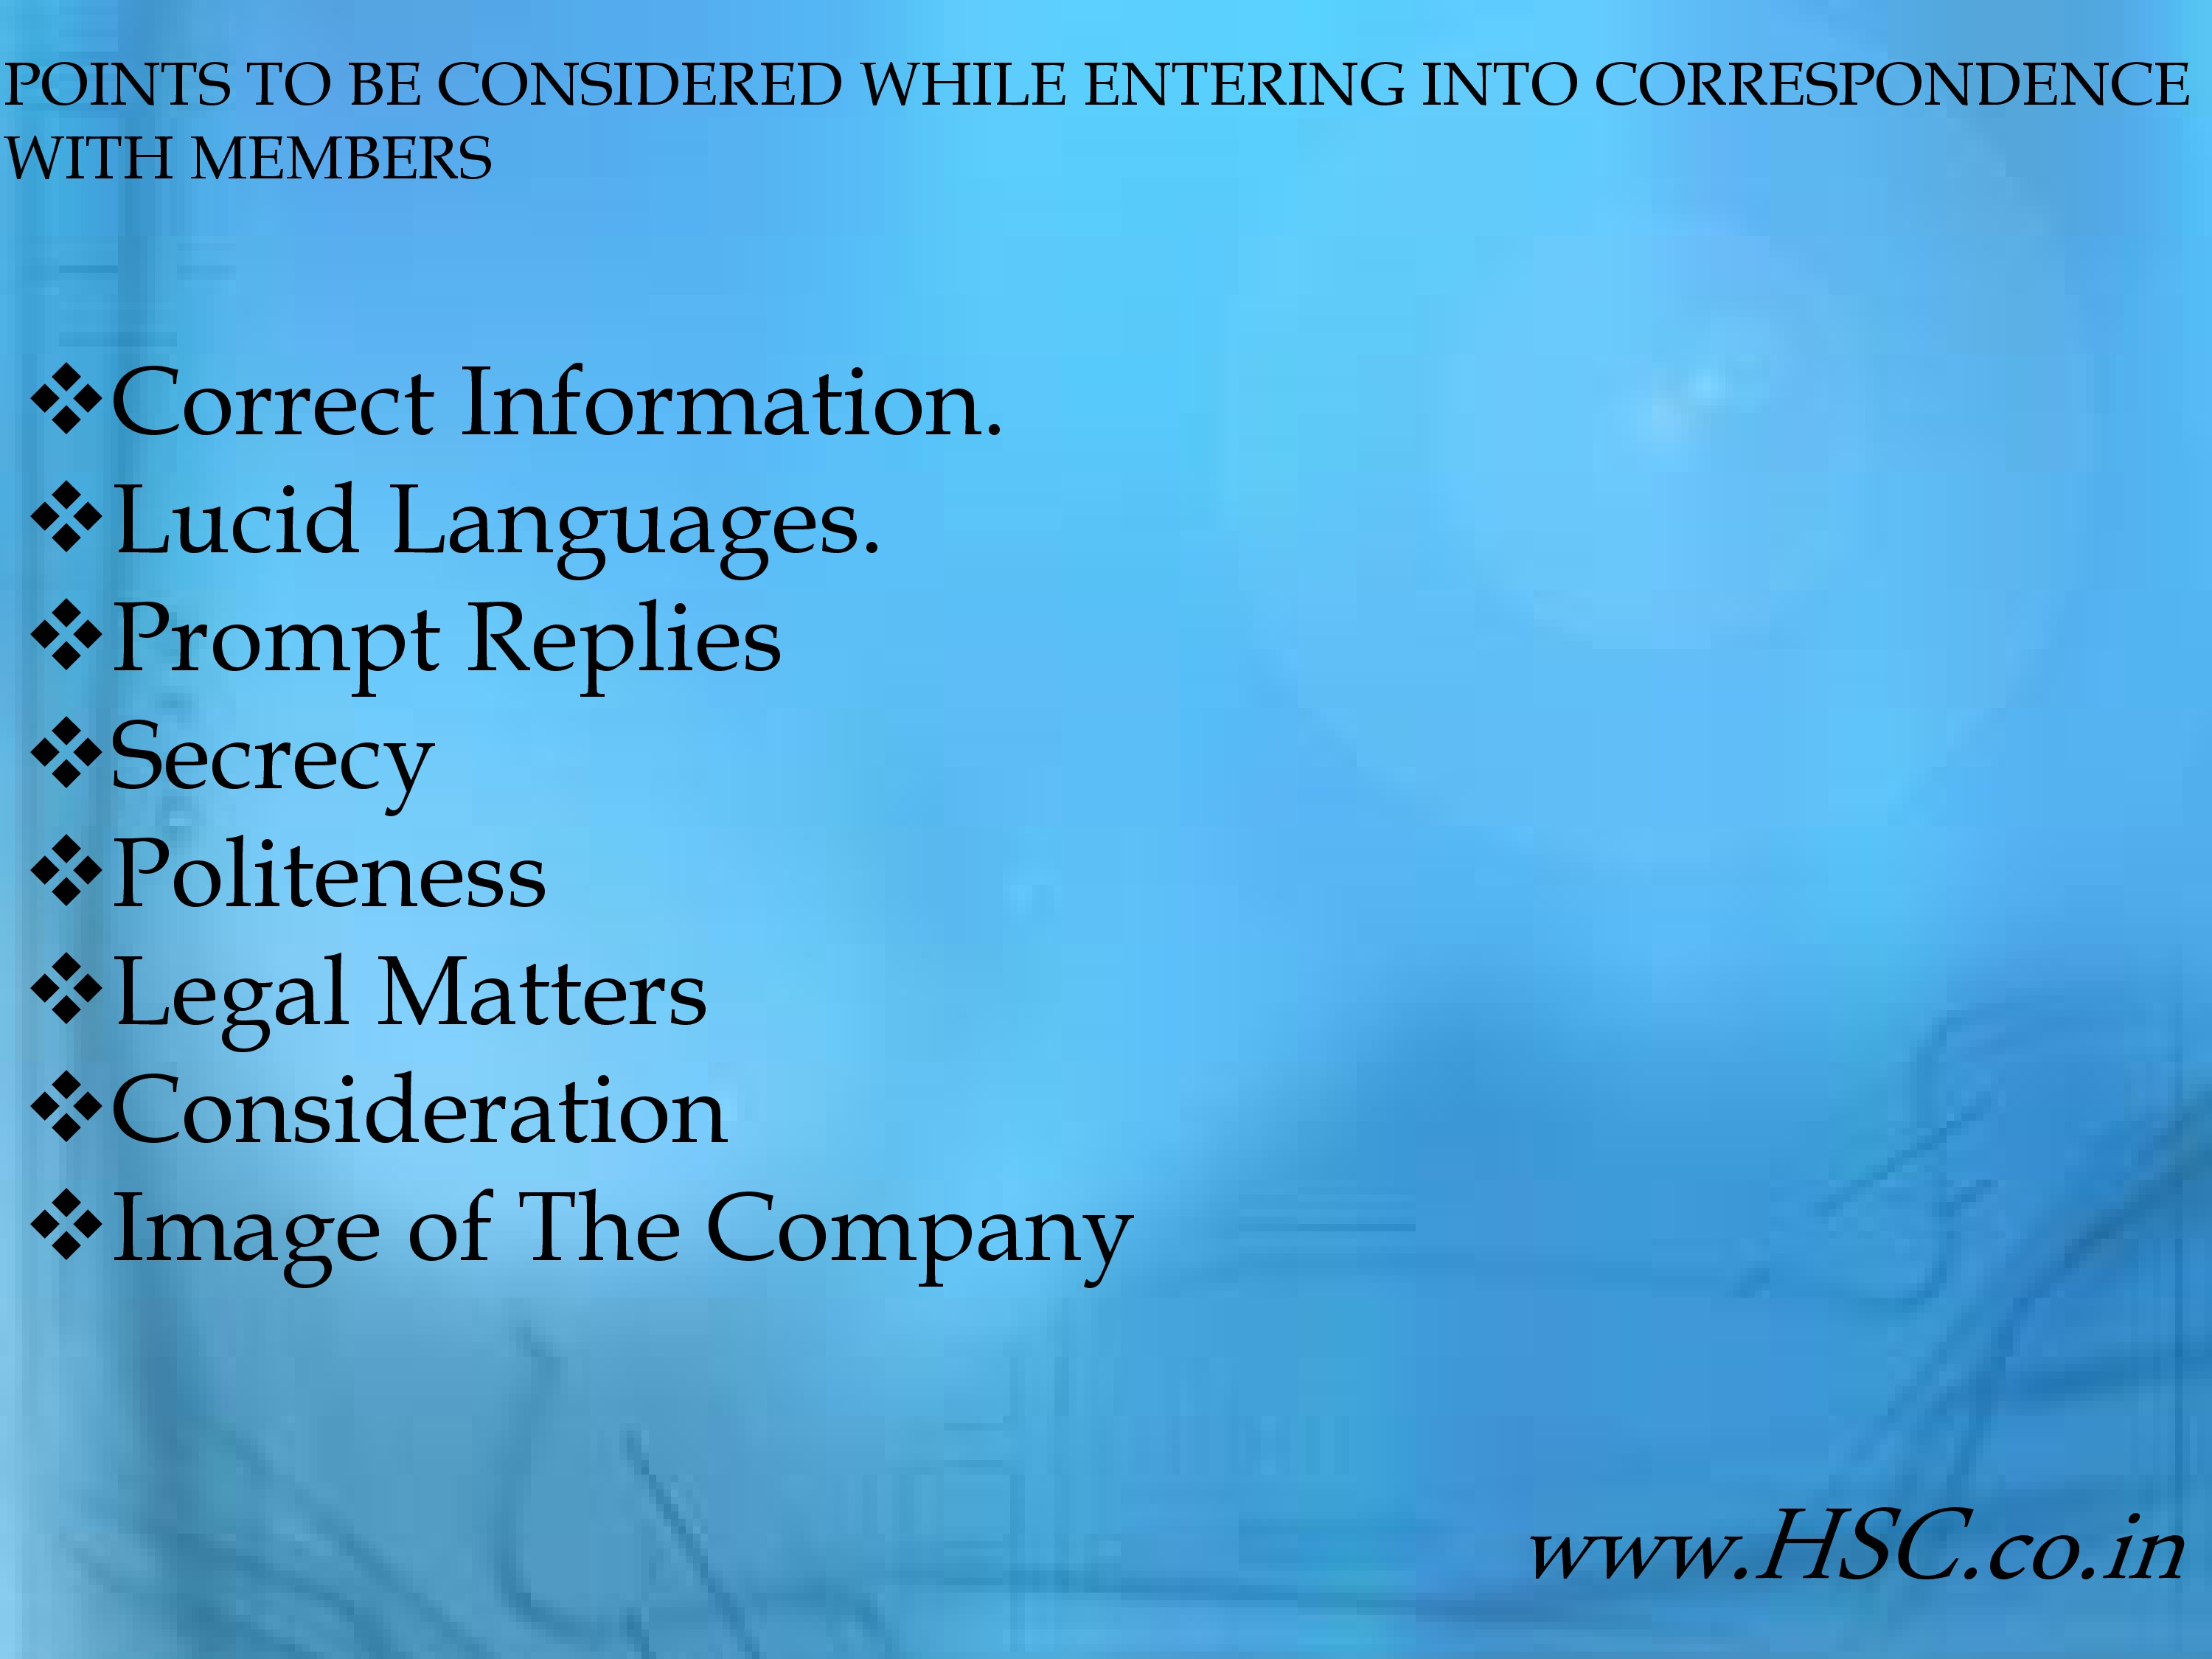 points to be considered while entering into correspondence